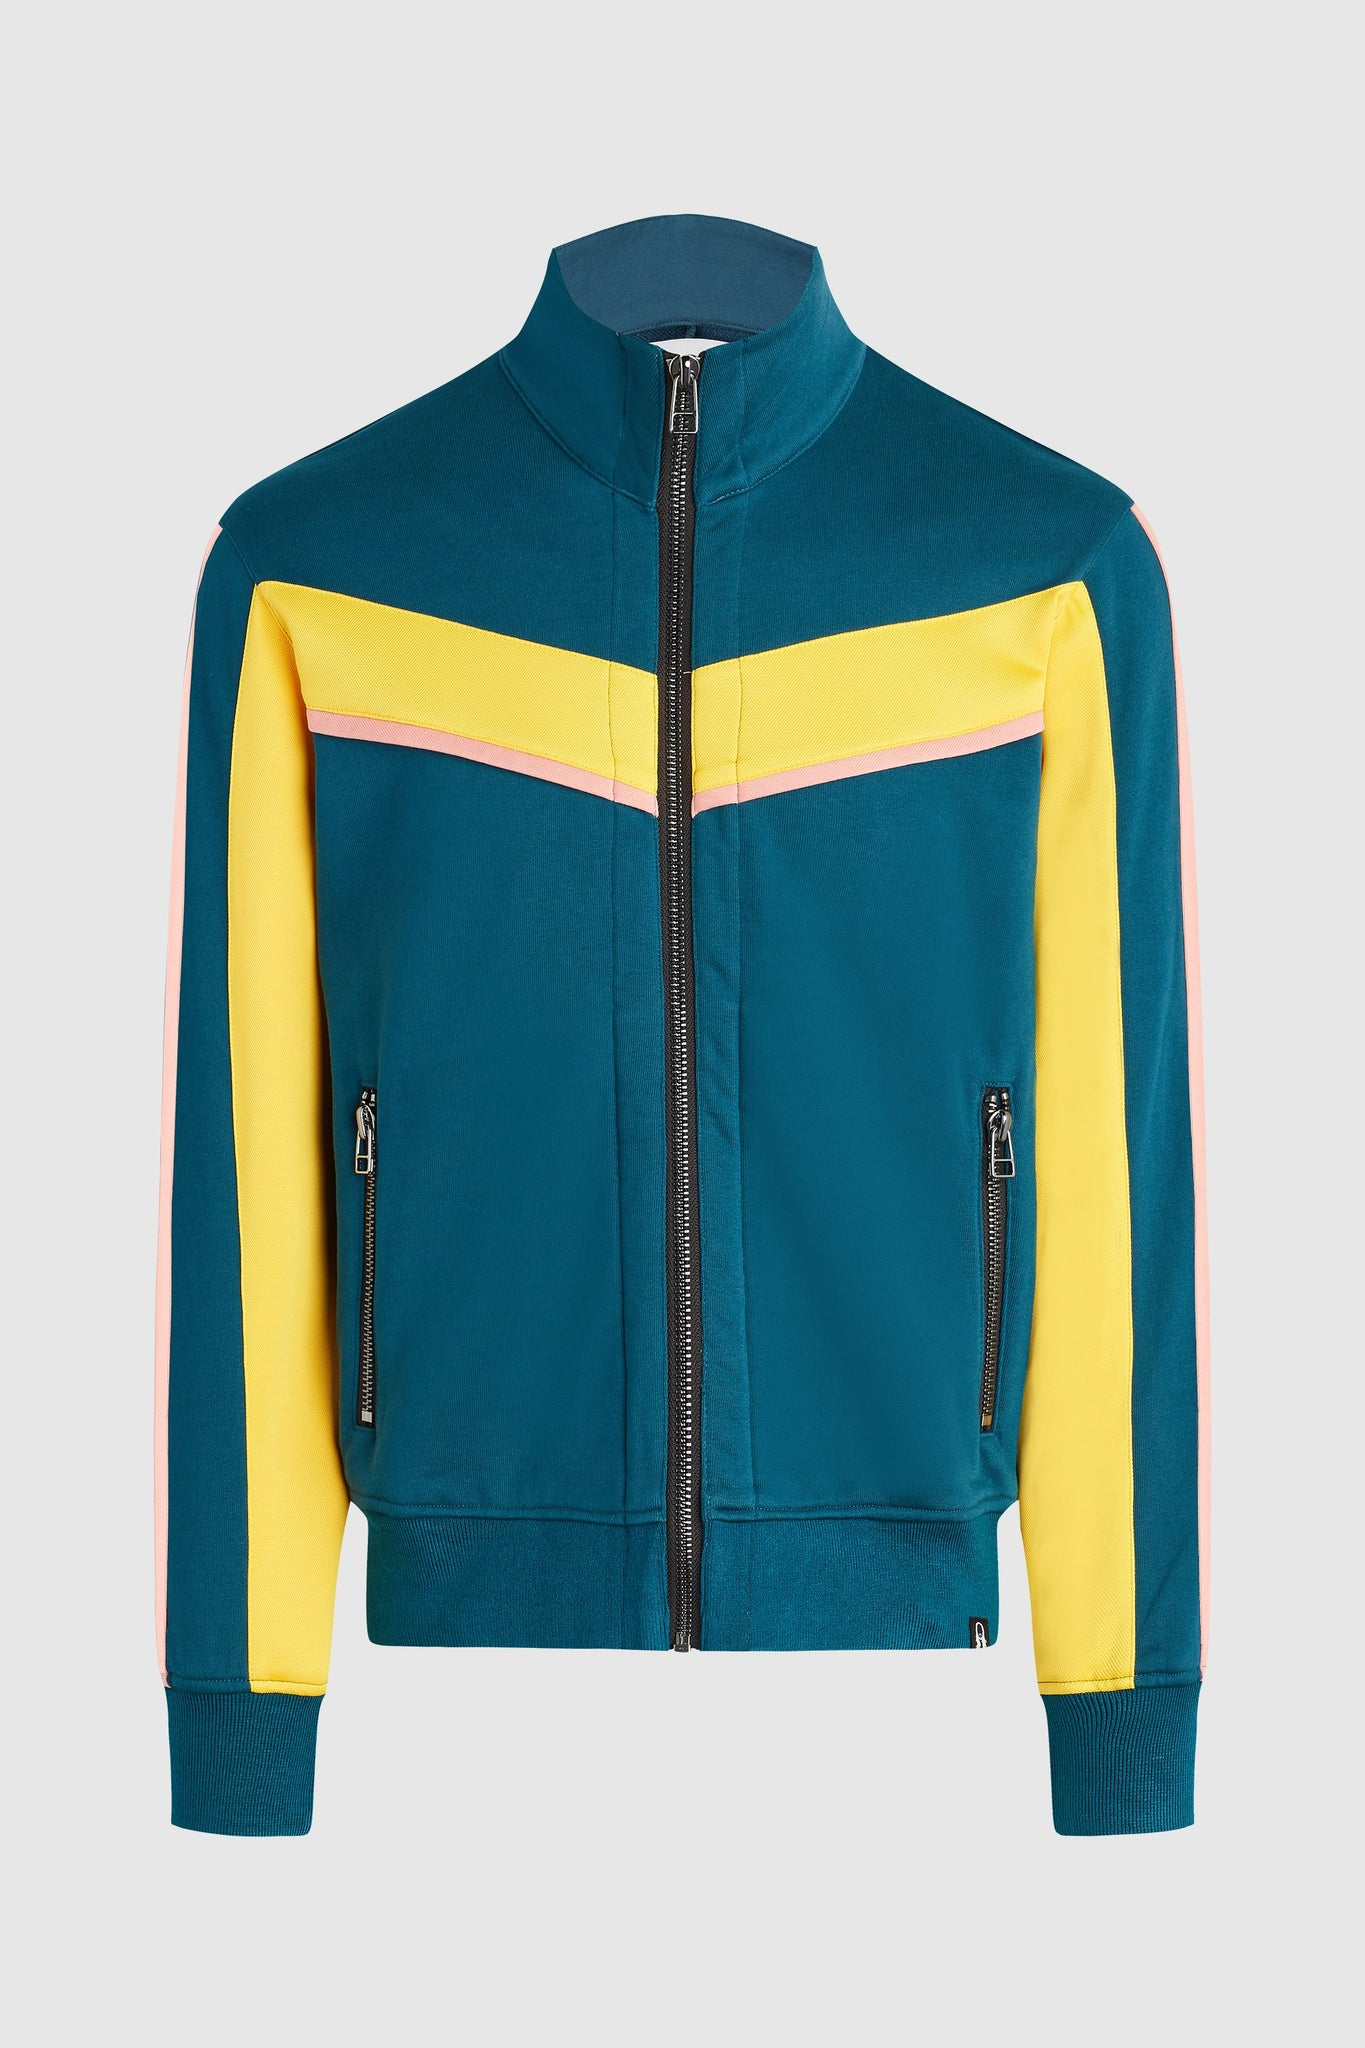 Nadya 2 Track Jacket - Teal/Yellow/Coral